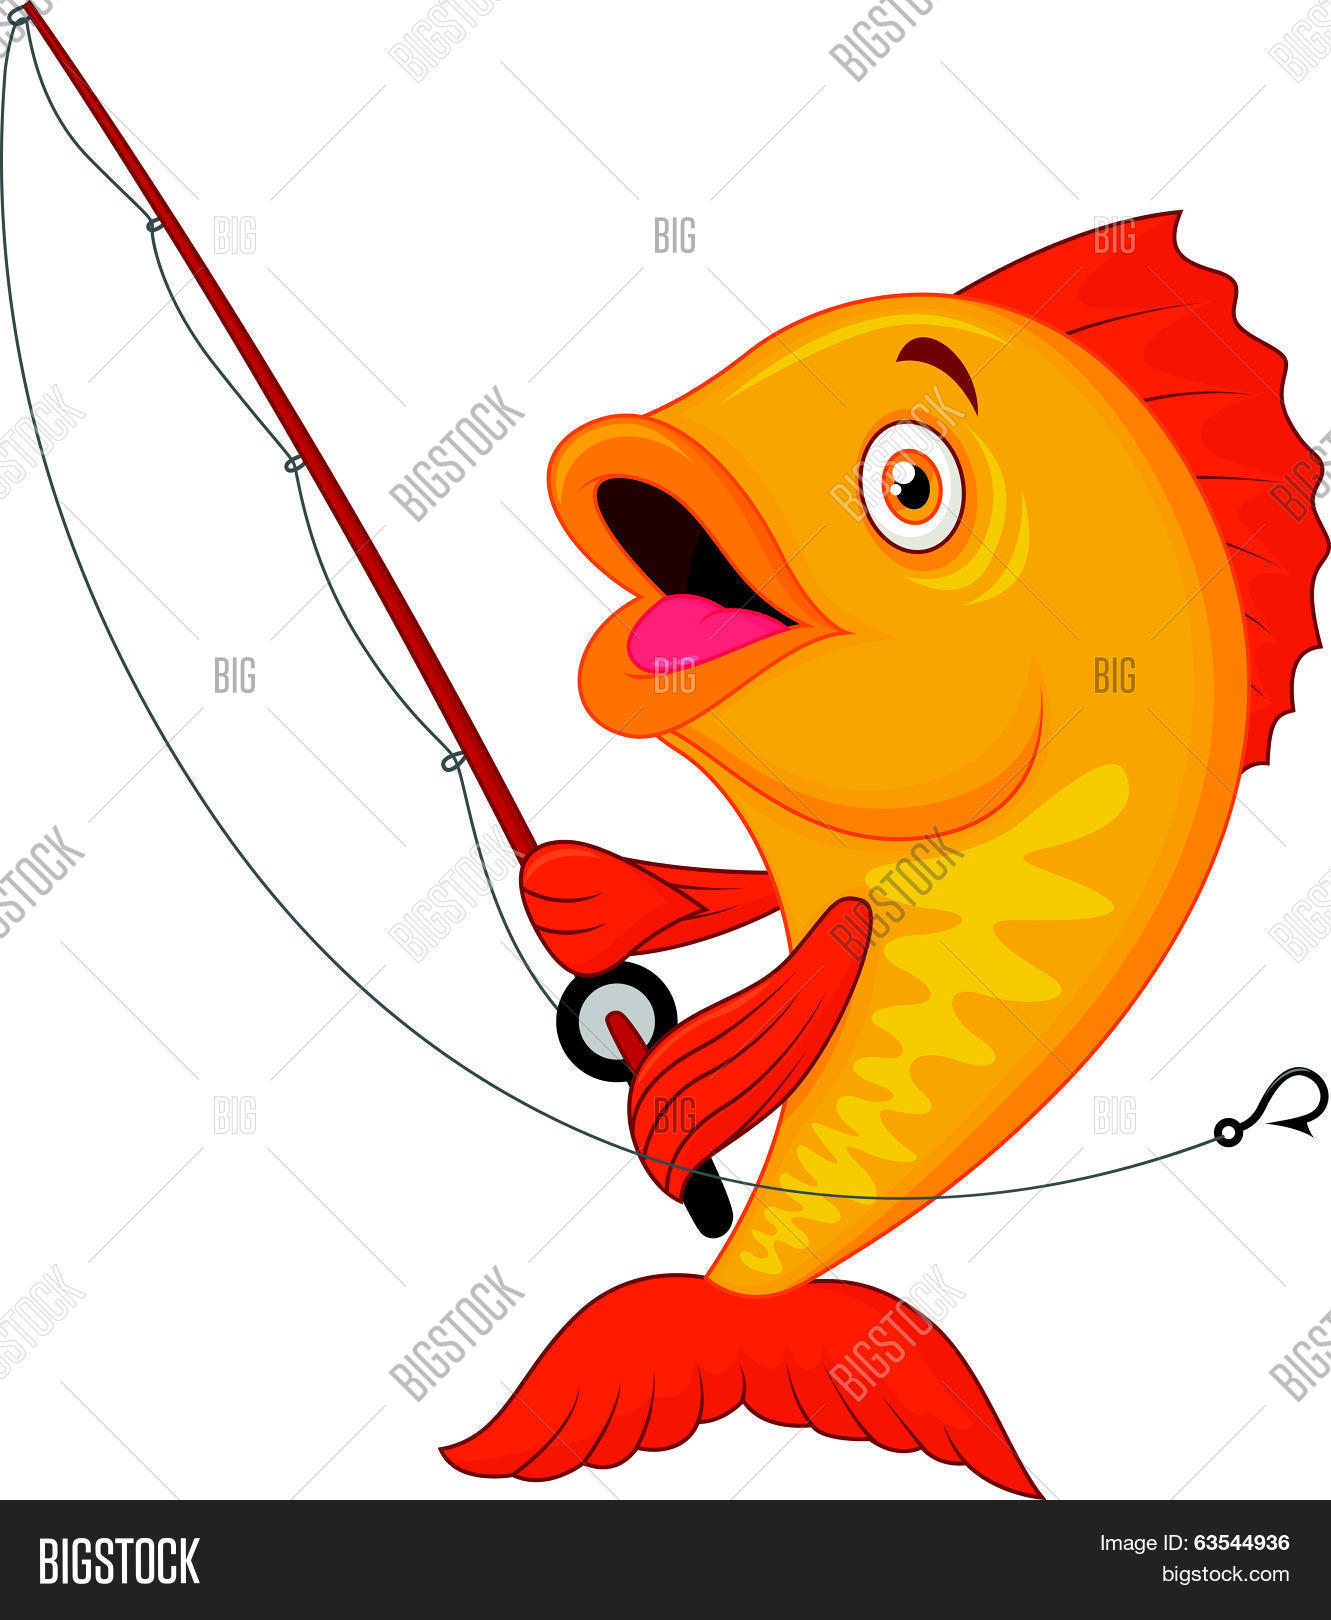 fishing with fishing rod deanlevin info old man fishing clipart man fishing clip art picture